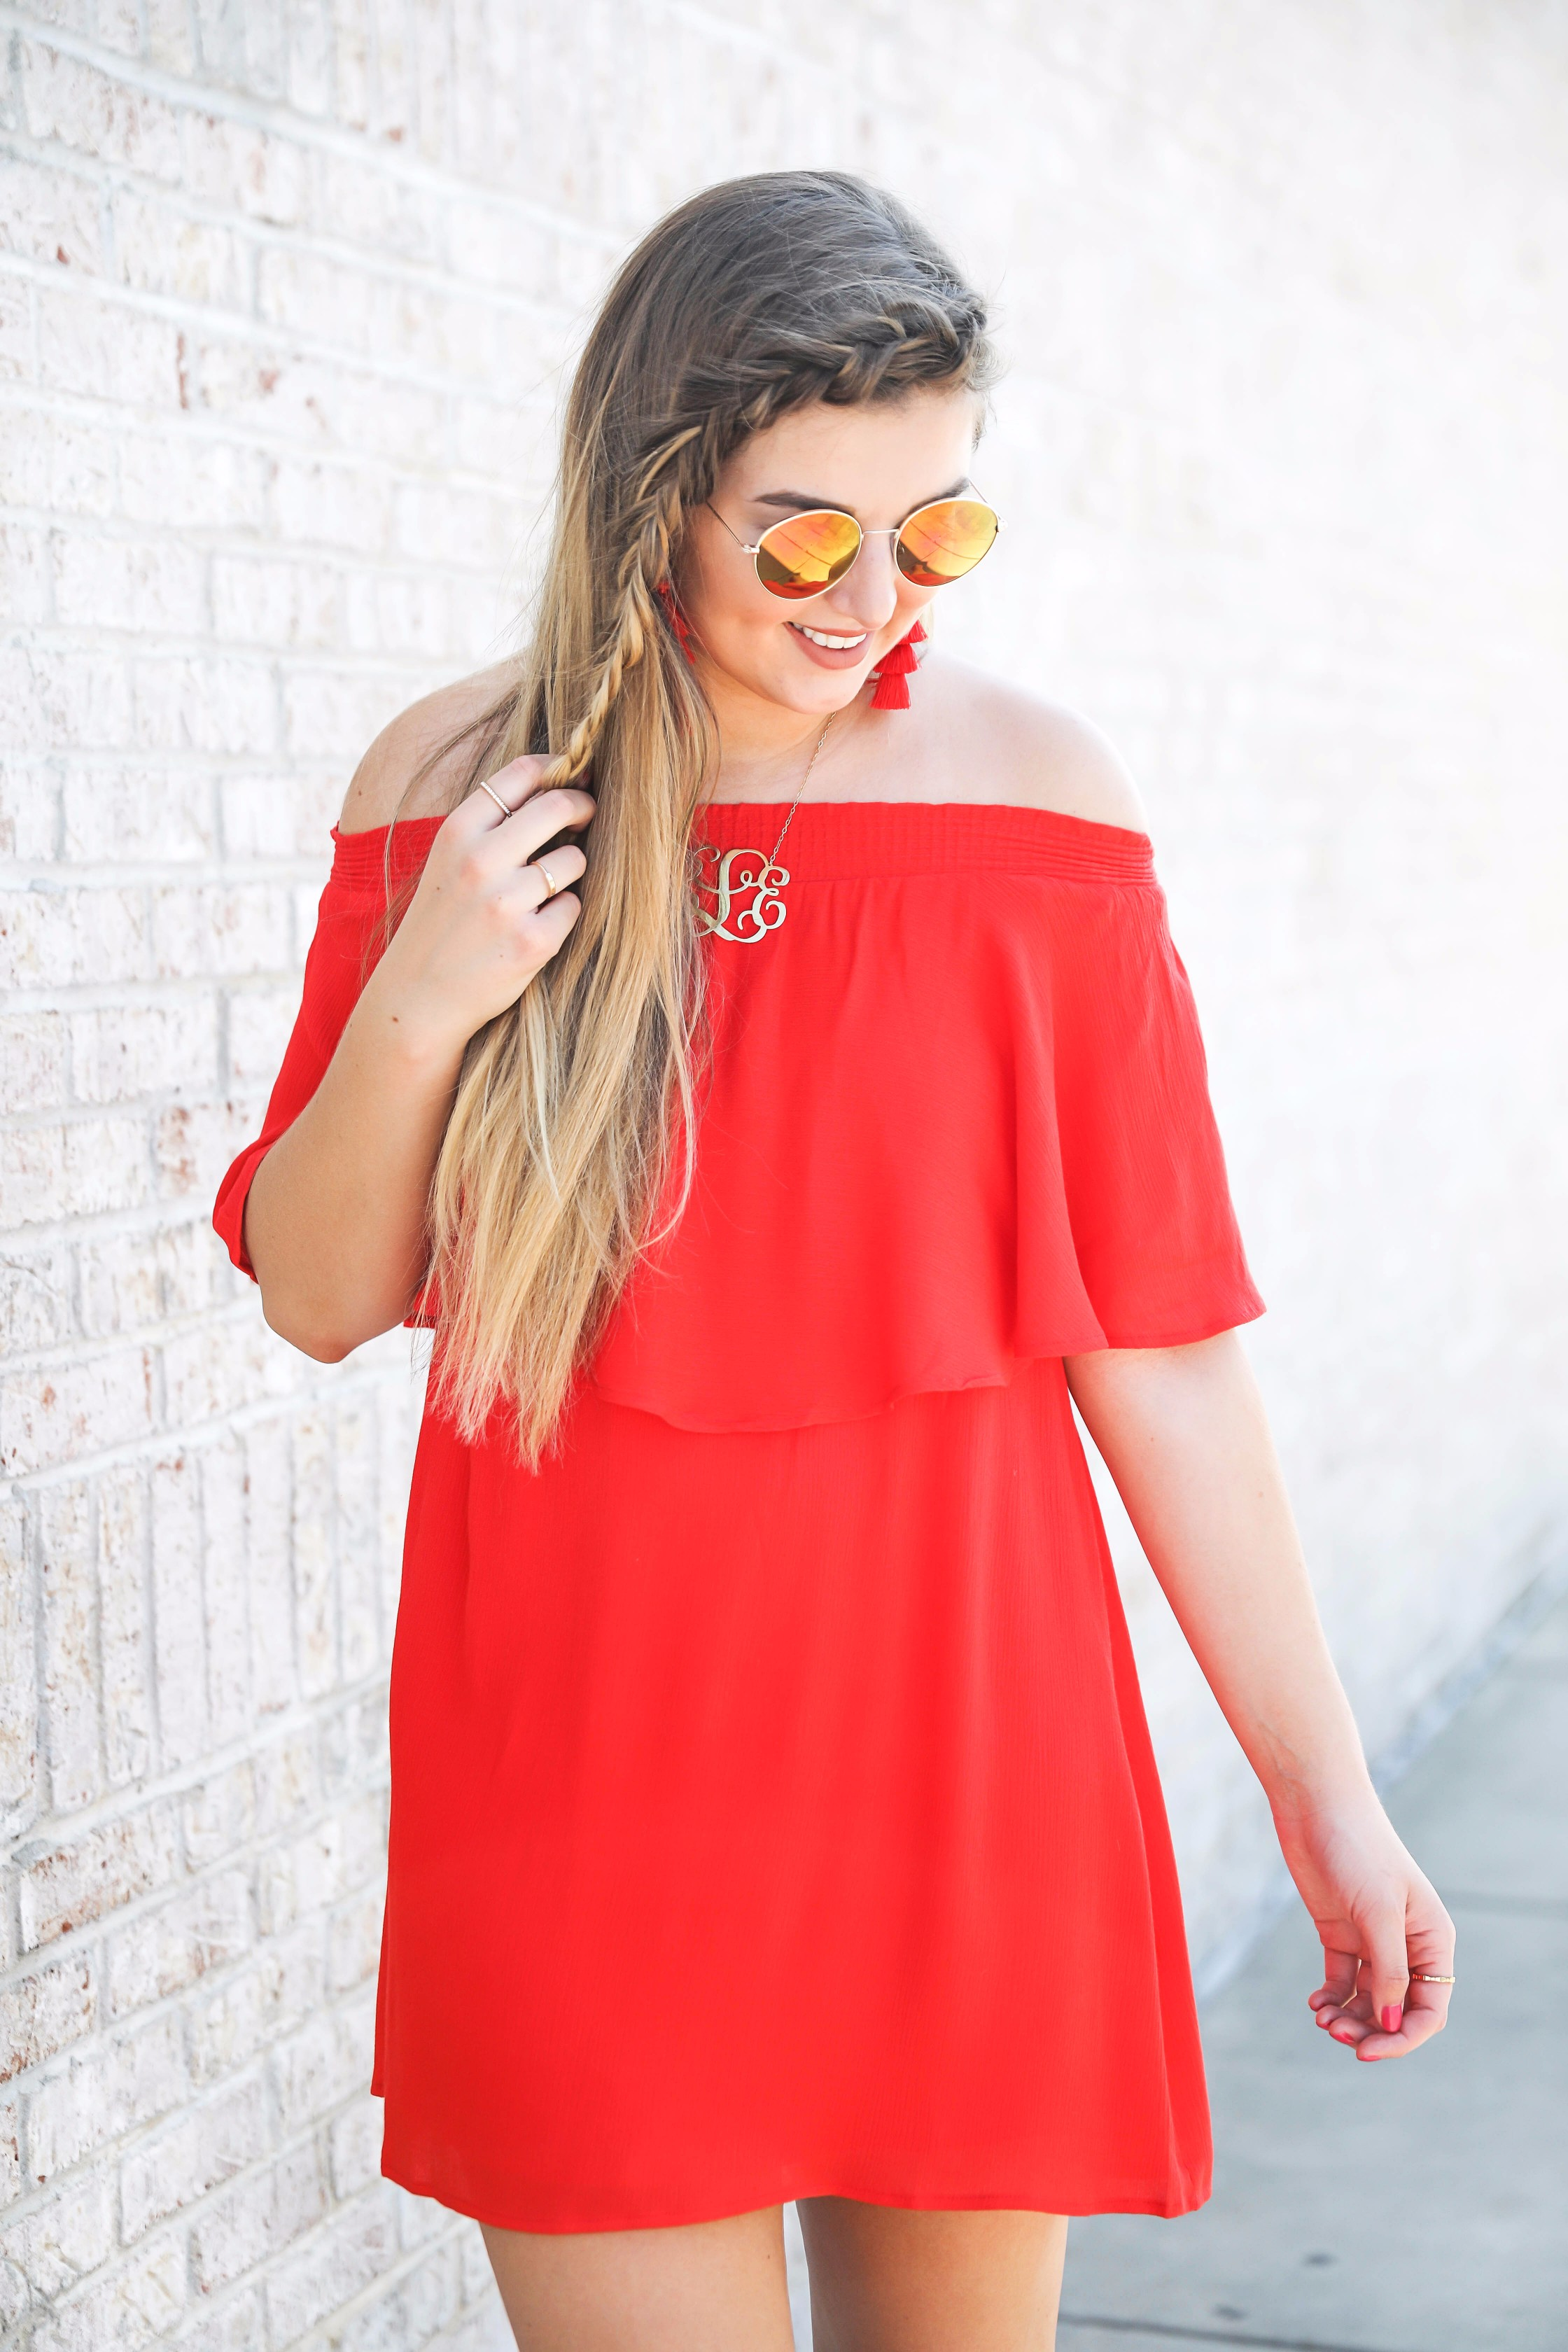 Red off the shoulder dress y Show Me Your MuMu! The cutest dress for summer paired with red tassel earrings, red circle sunglasses, and wedges. Braided fish tail hair. By fashion blogger lauren lindmark daily dose of charm